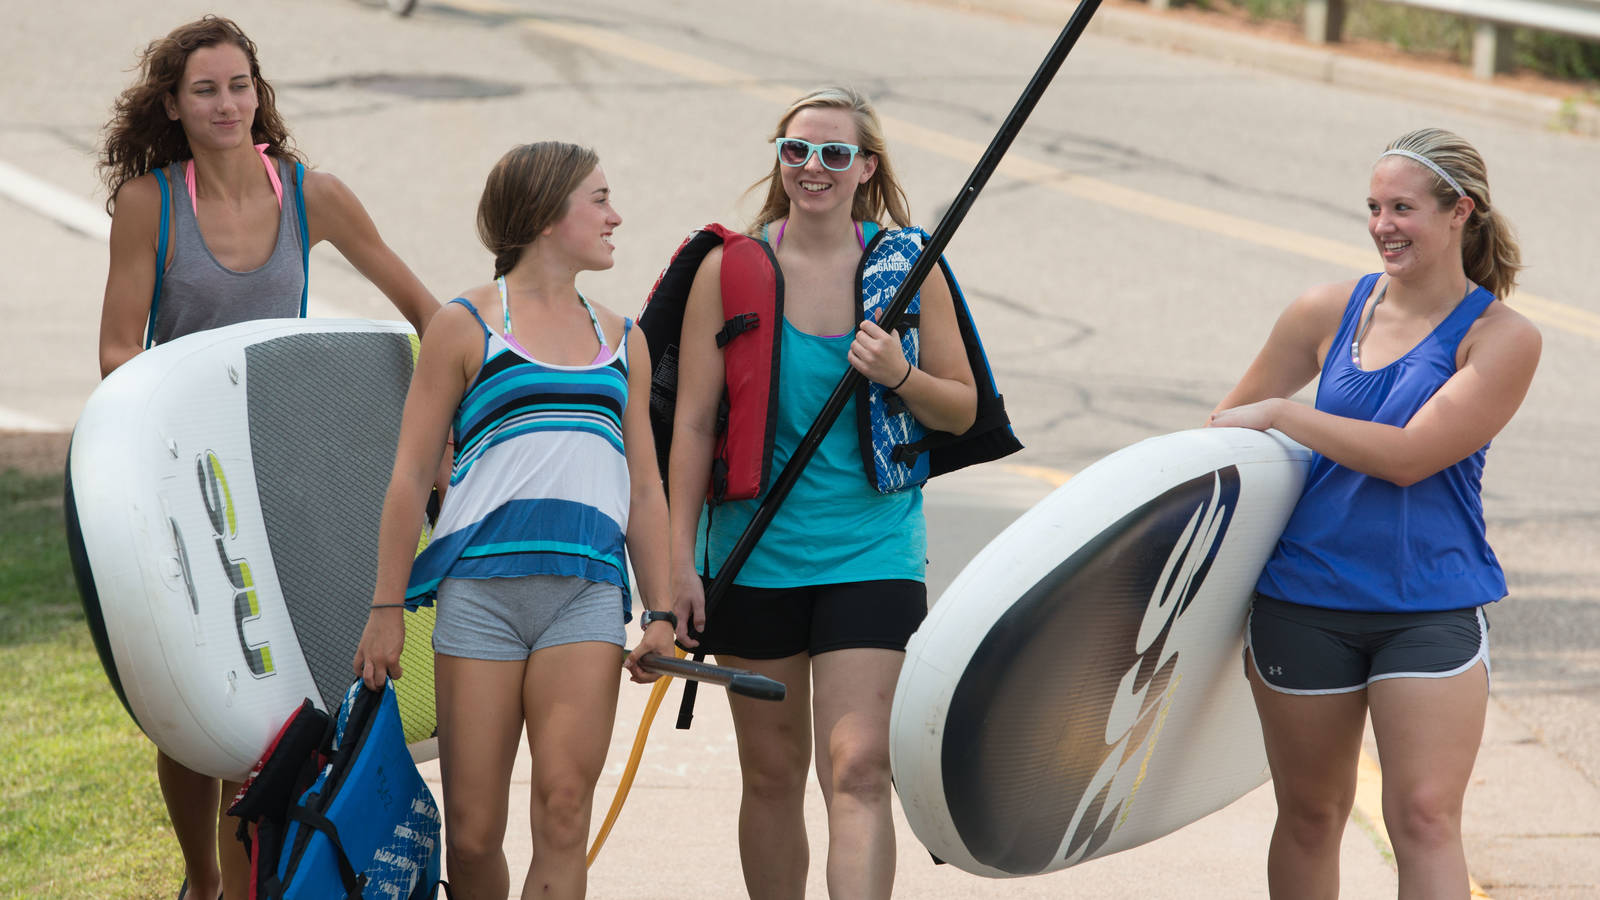 Students heading out to river float with rented paddle boards and tubes